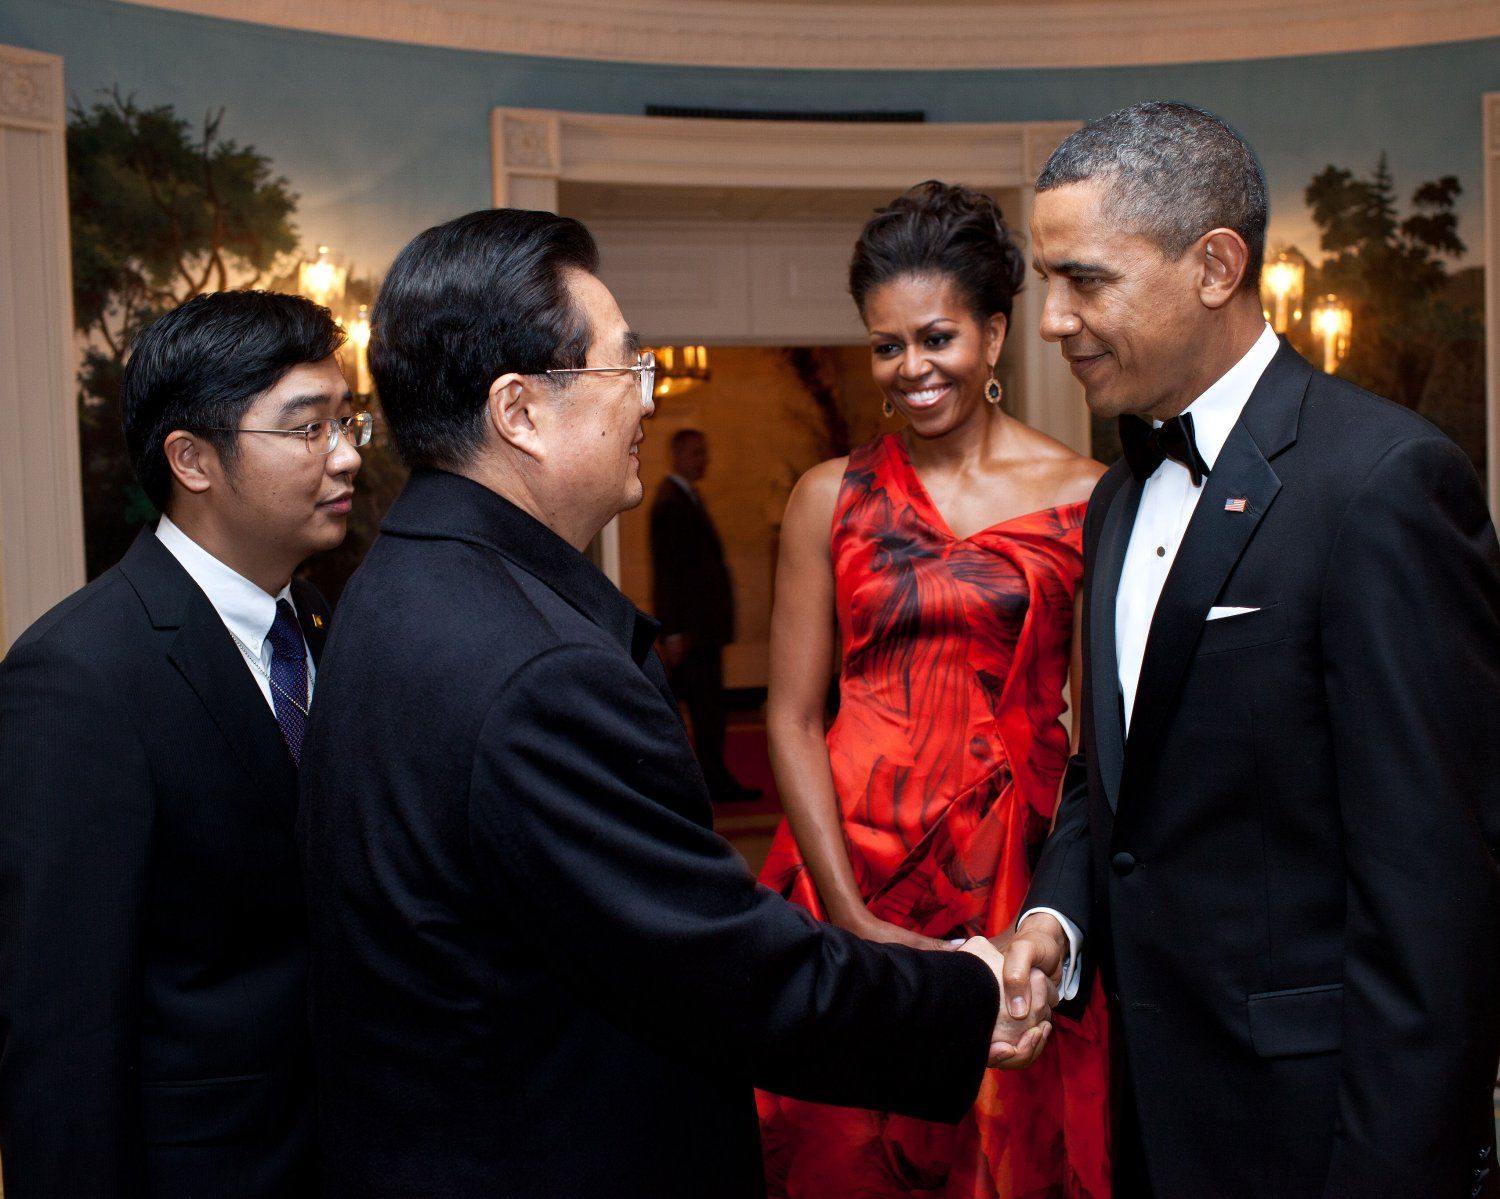 PRES BARACK OBAMA SAYS GOODBYE TO CHINA's LEADER HU JINTAO - 8X10 PHOTO (DD-021)